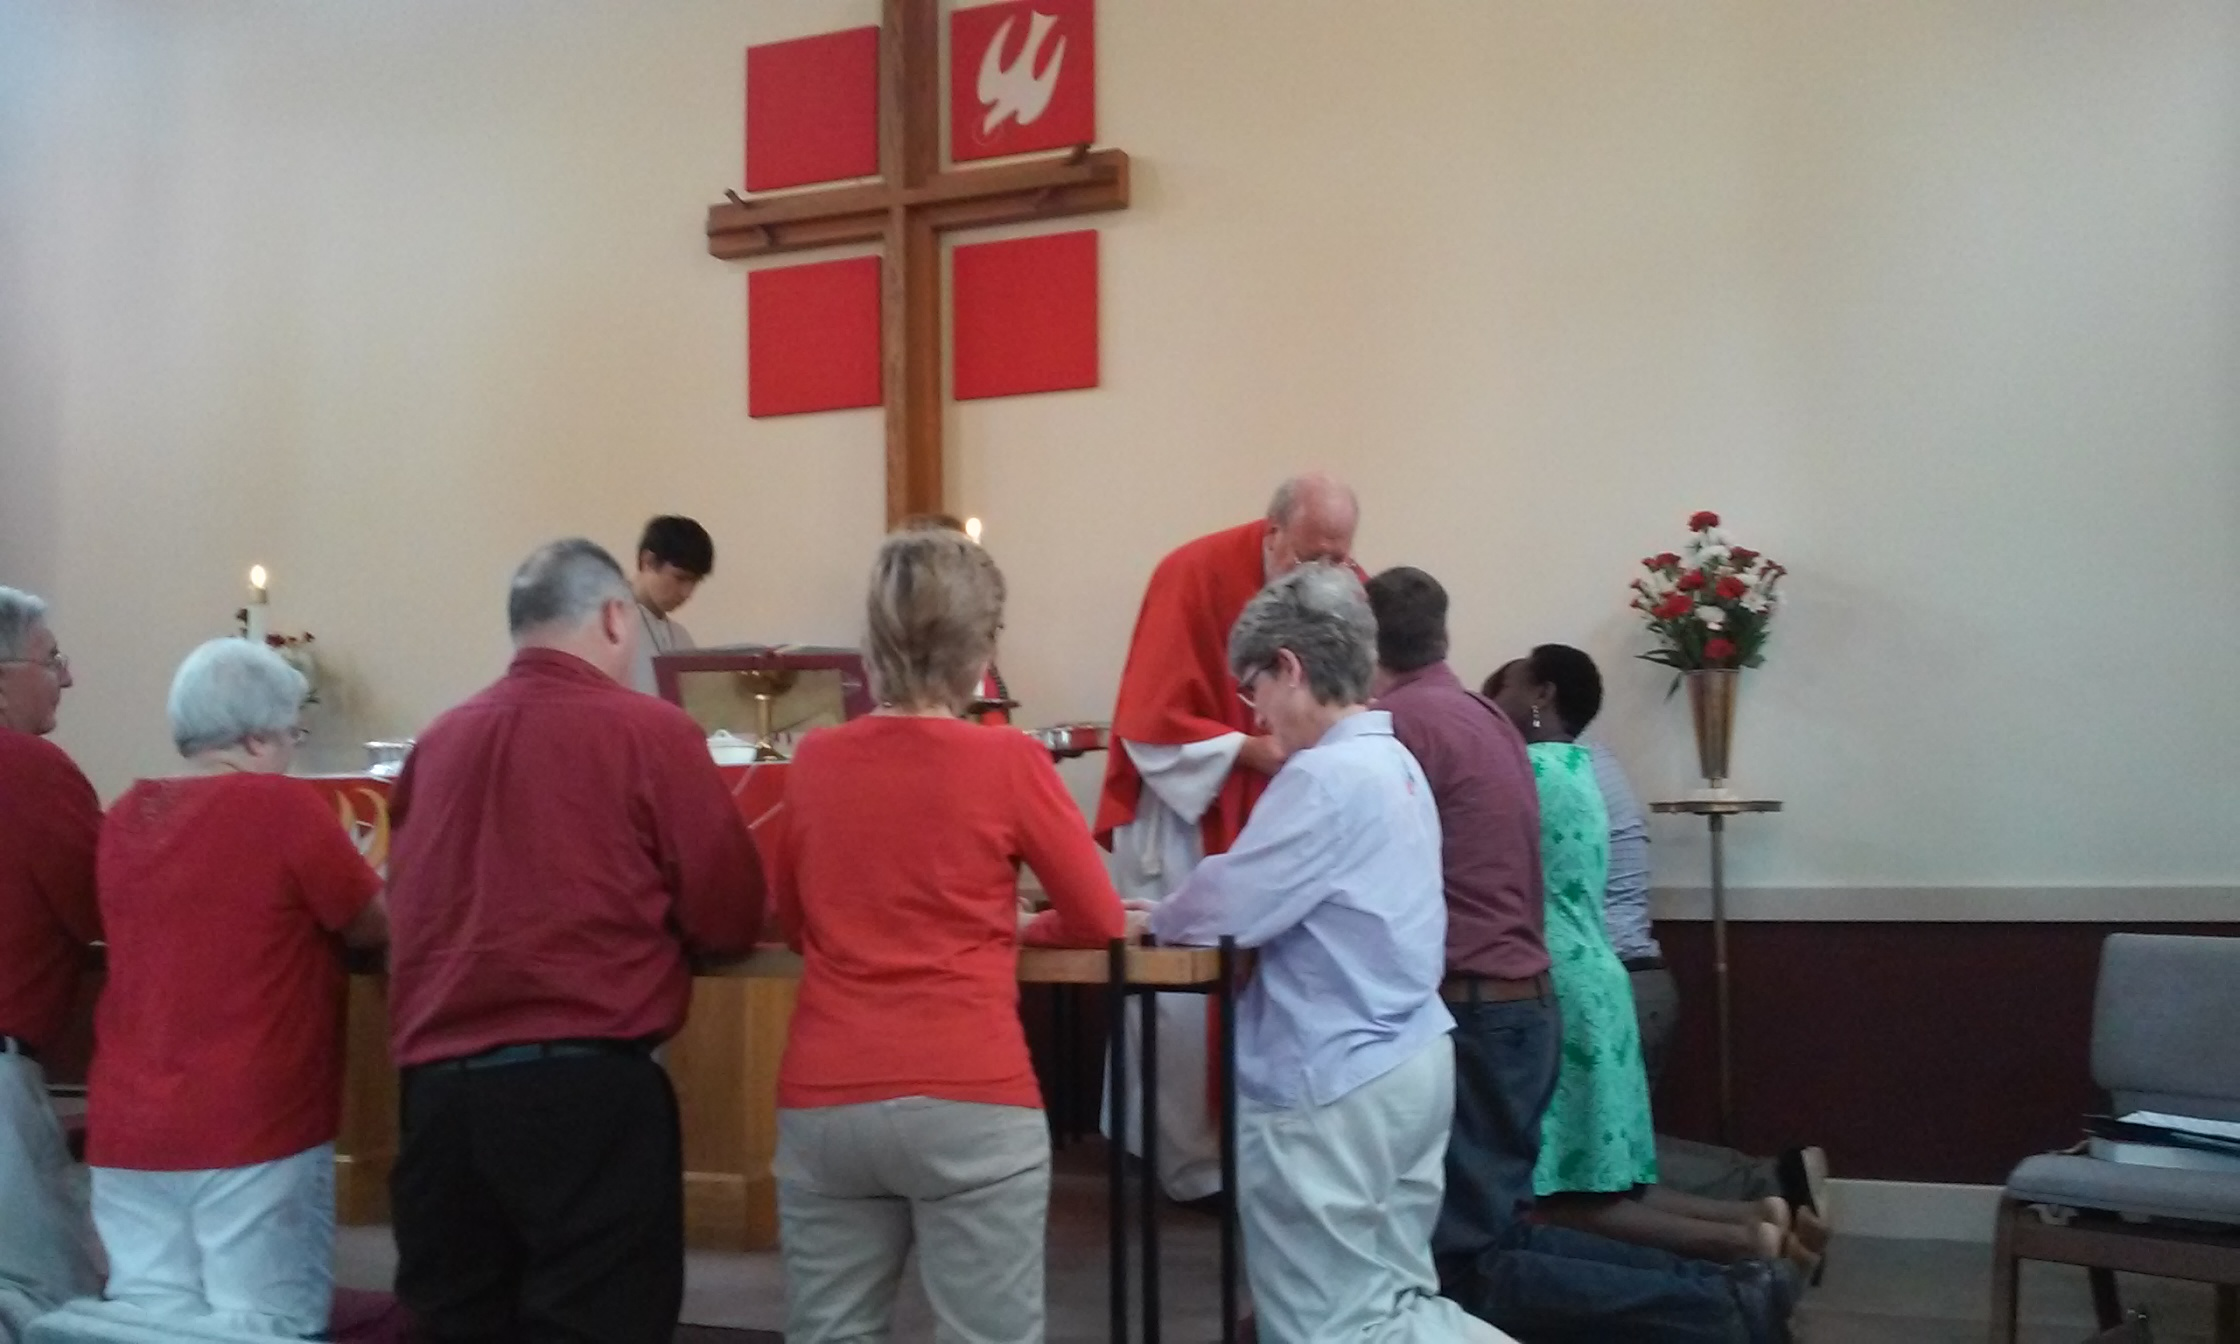 Kneeling at Altar for Communion